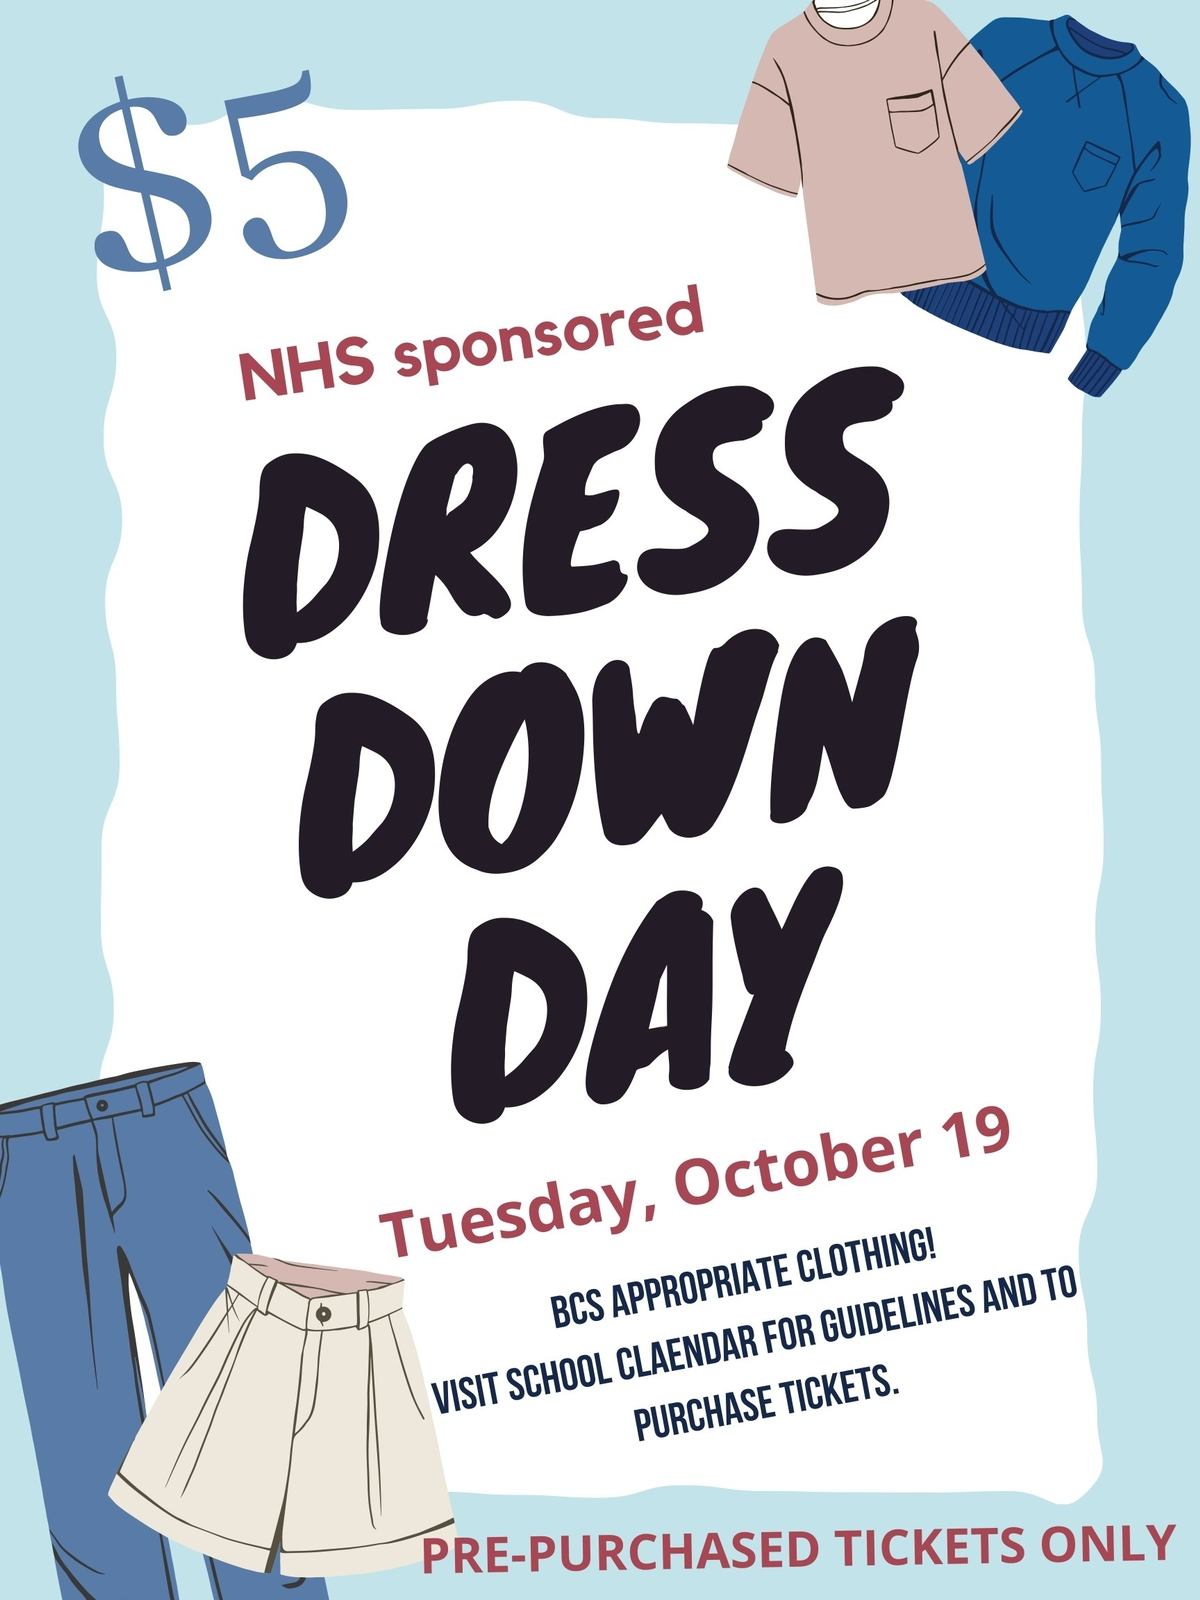 NHS Dress Down Day for ALL BCS Students